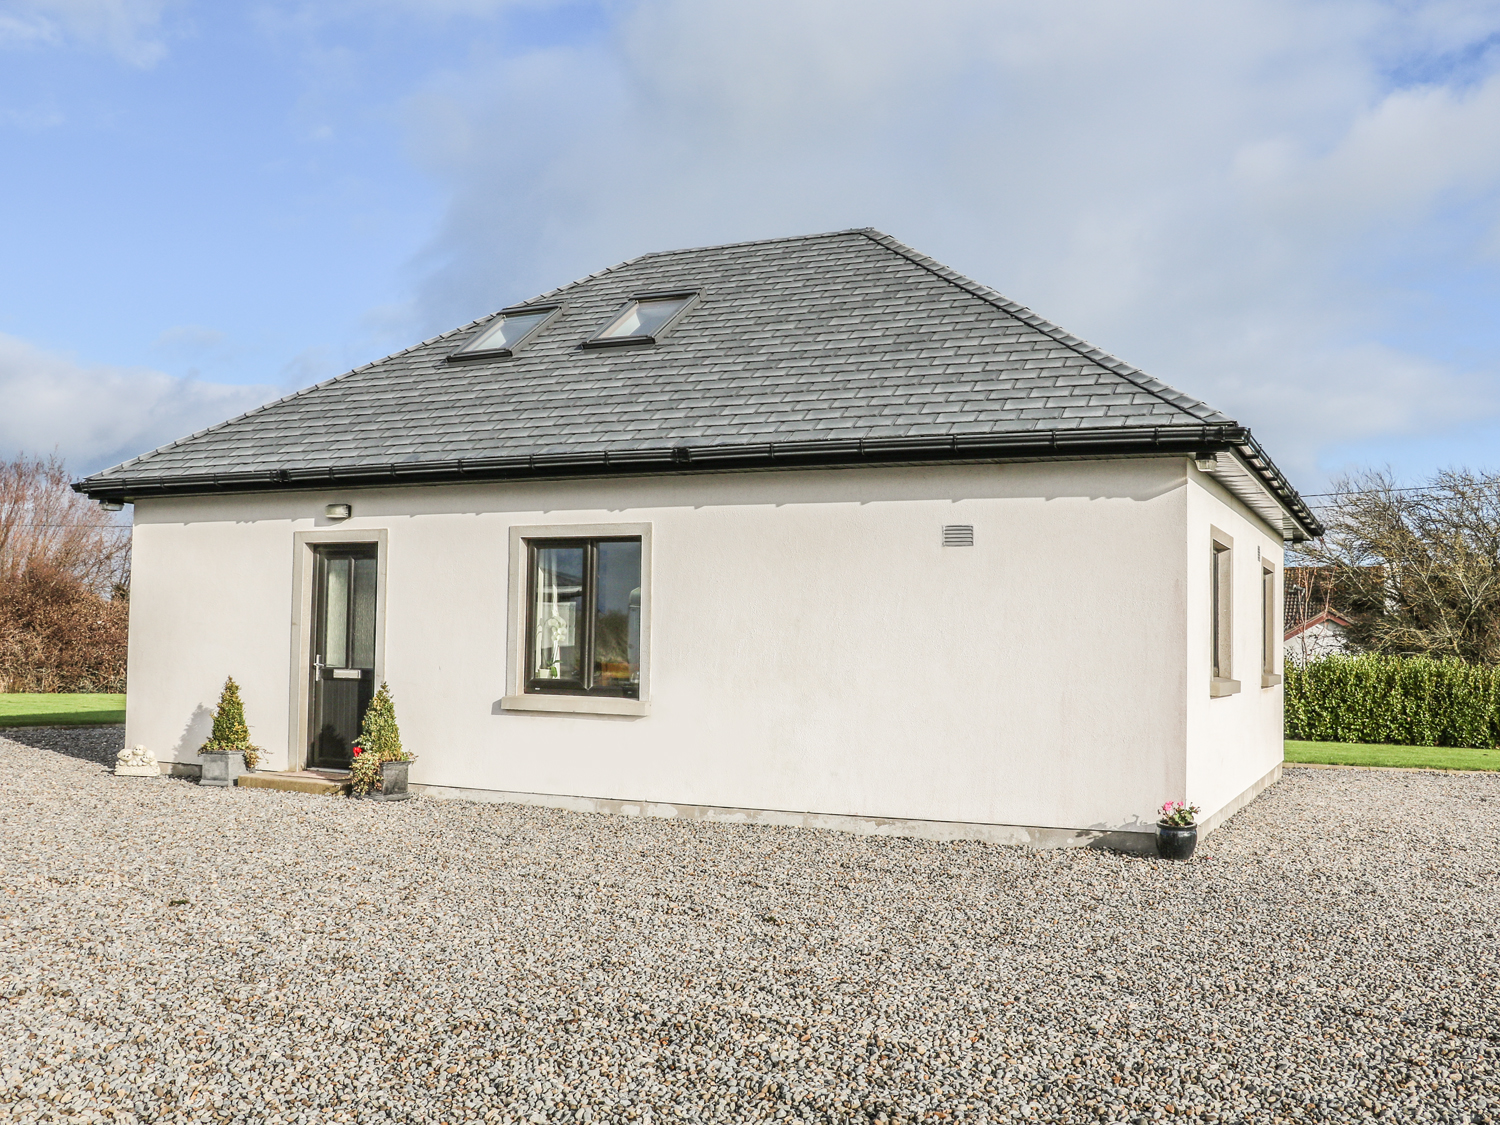 3 bedroom Cottage for rent in Ballymoney